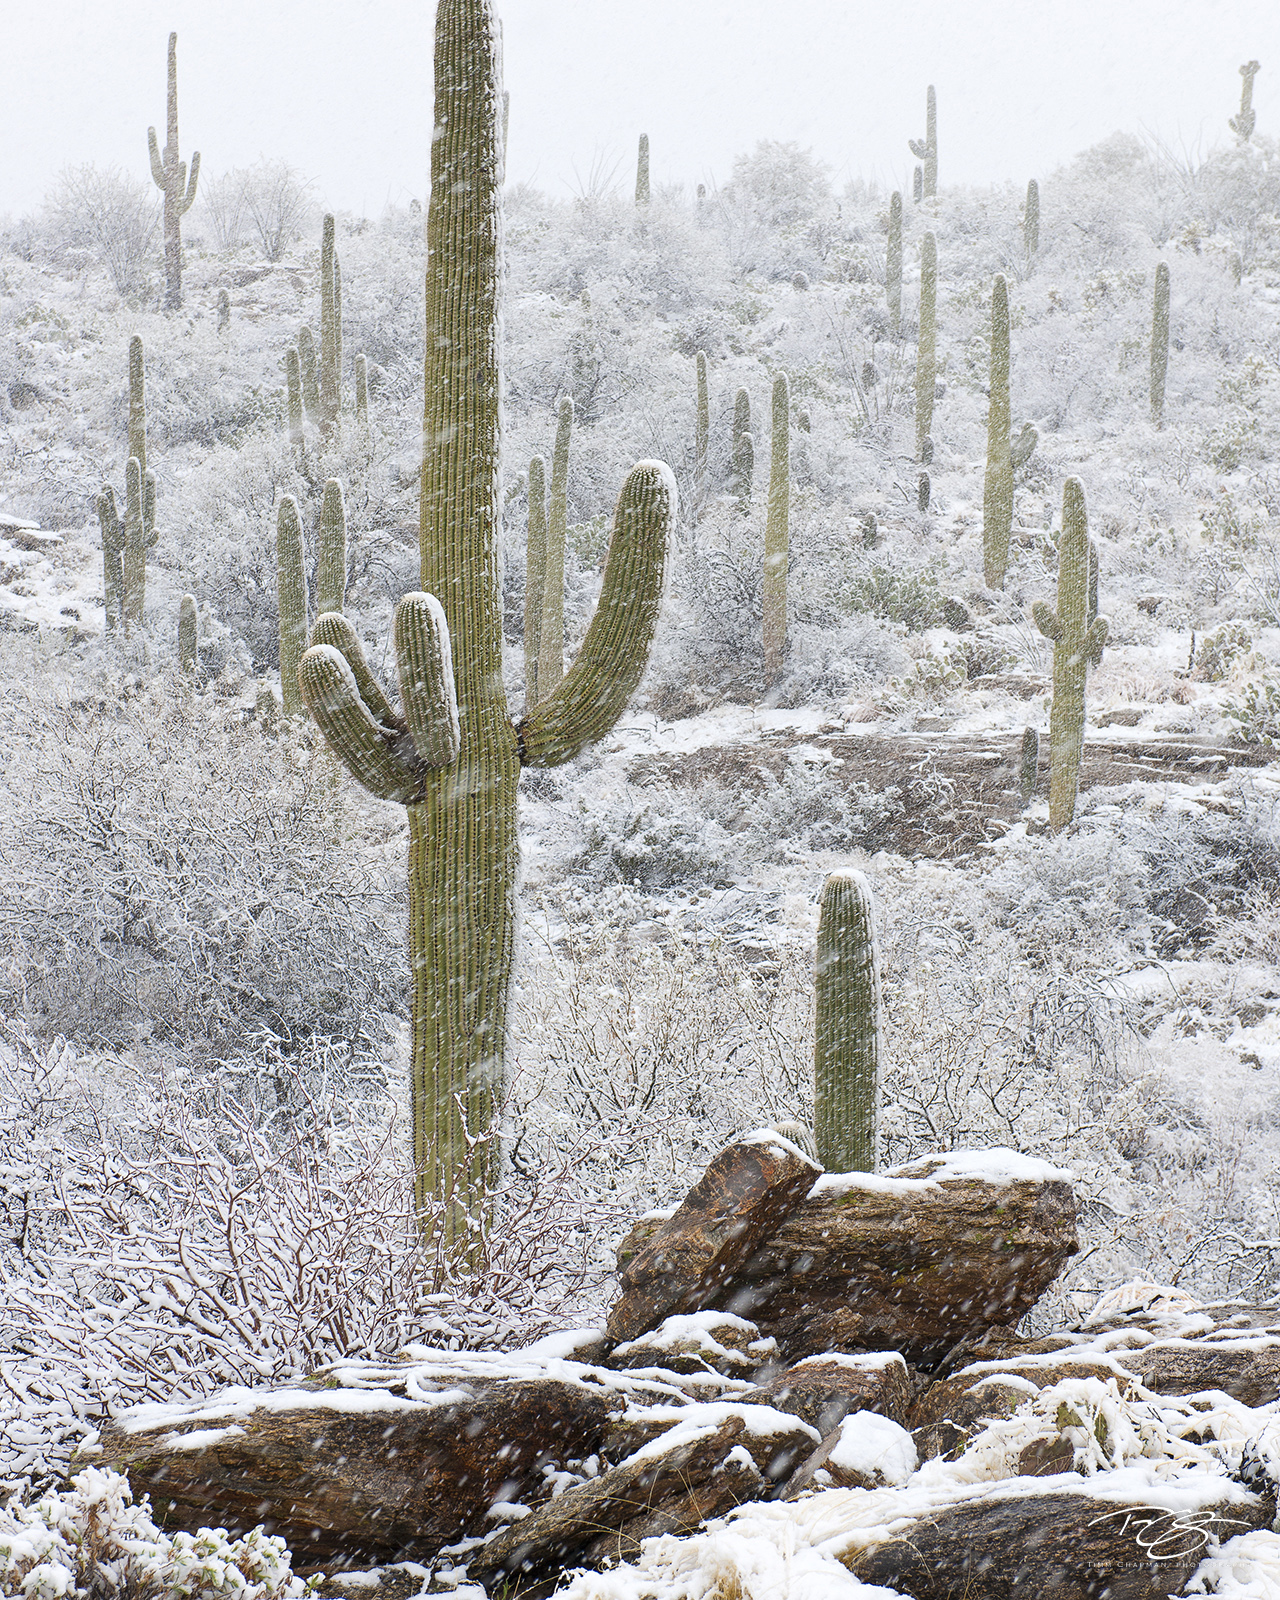 A rare snowfall blankets a forest of Saguaros in the Sonoran Desert